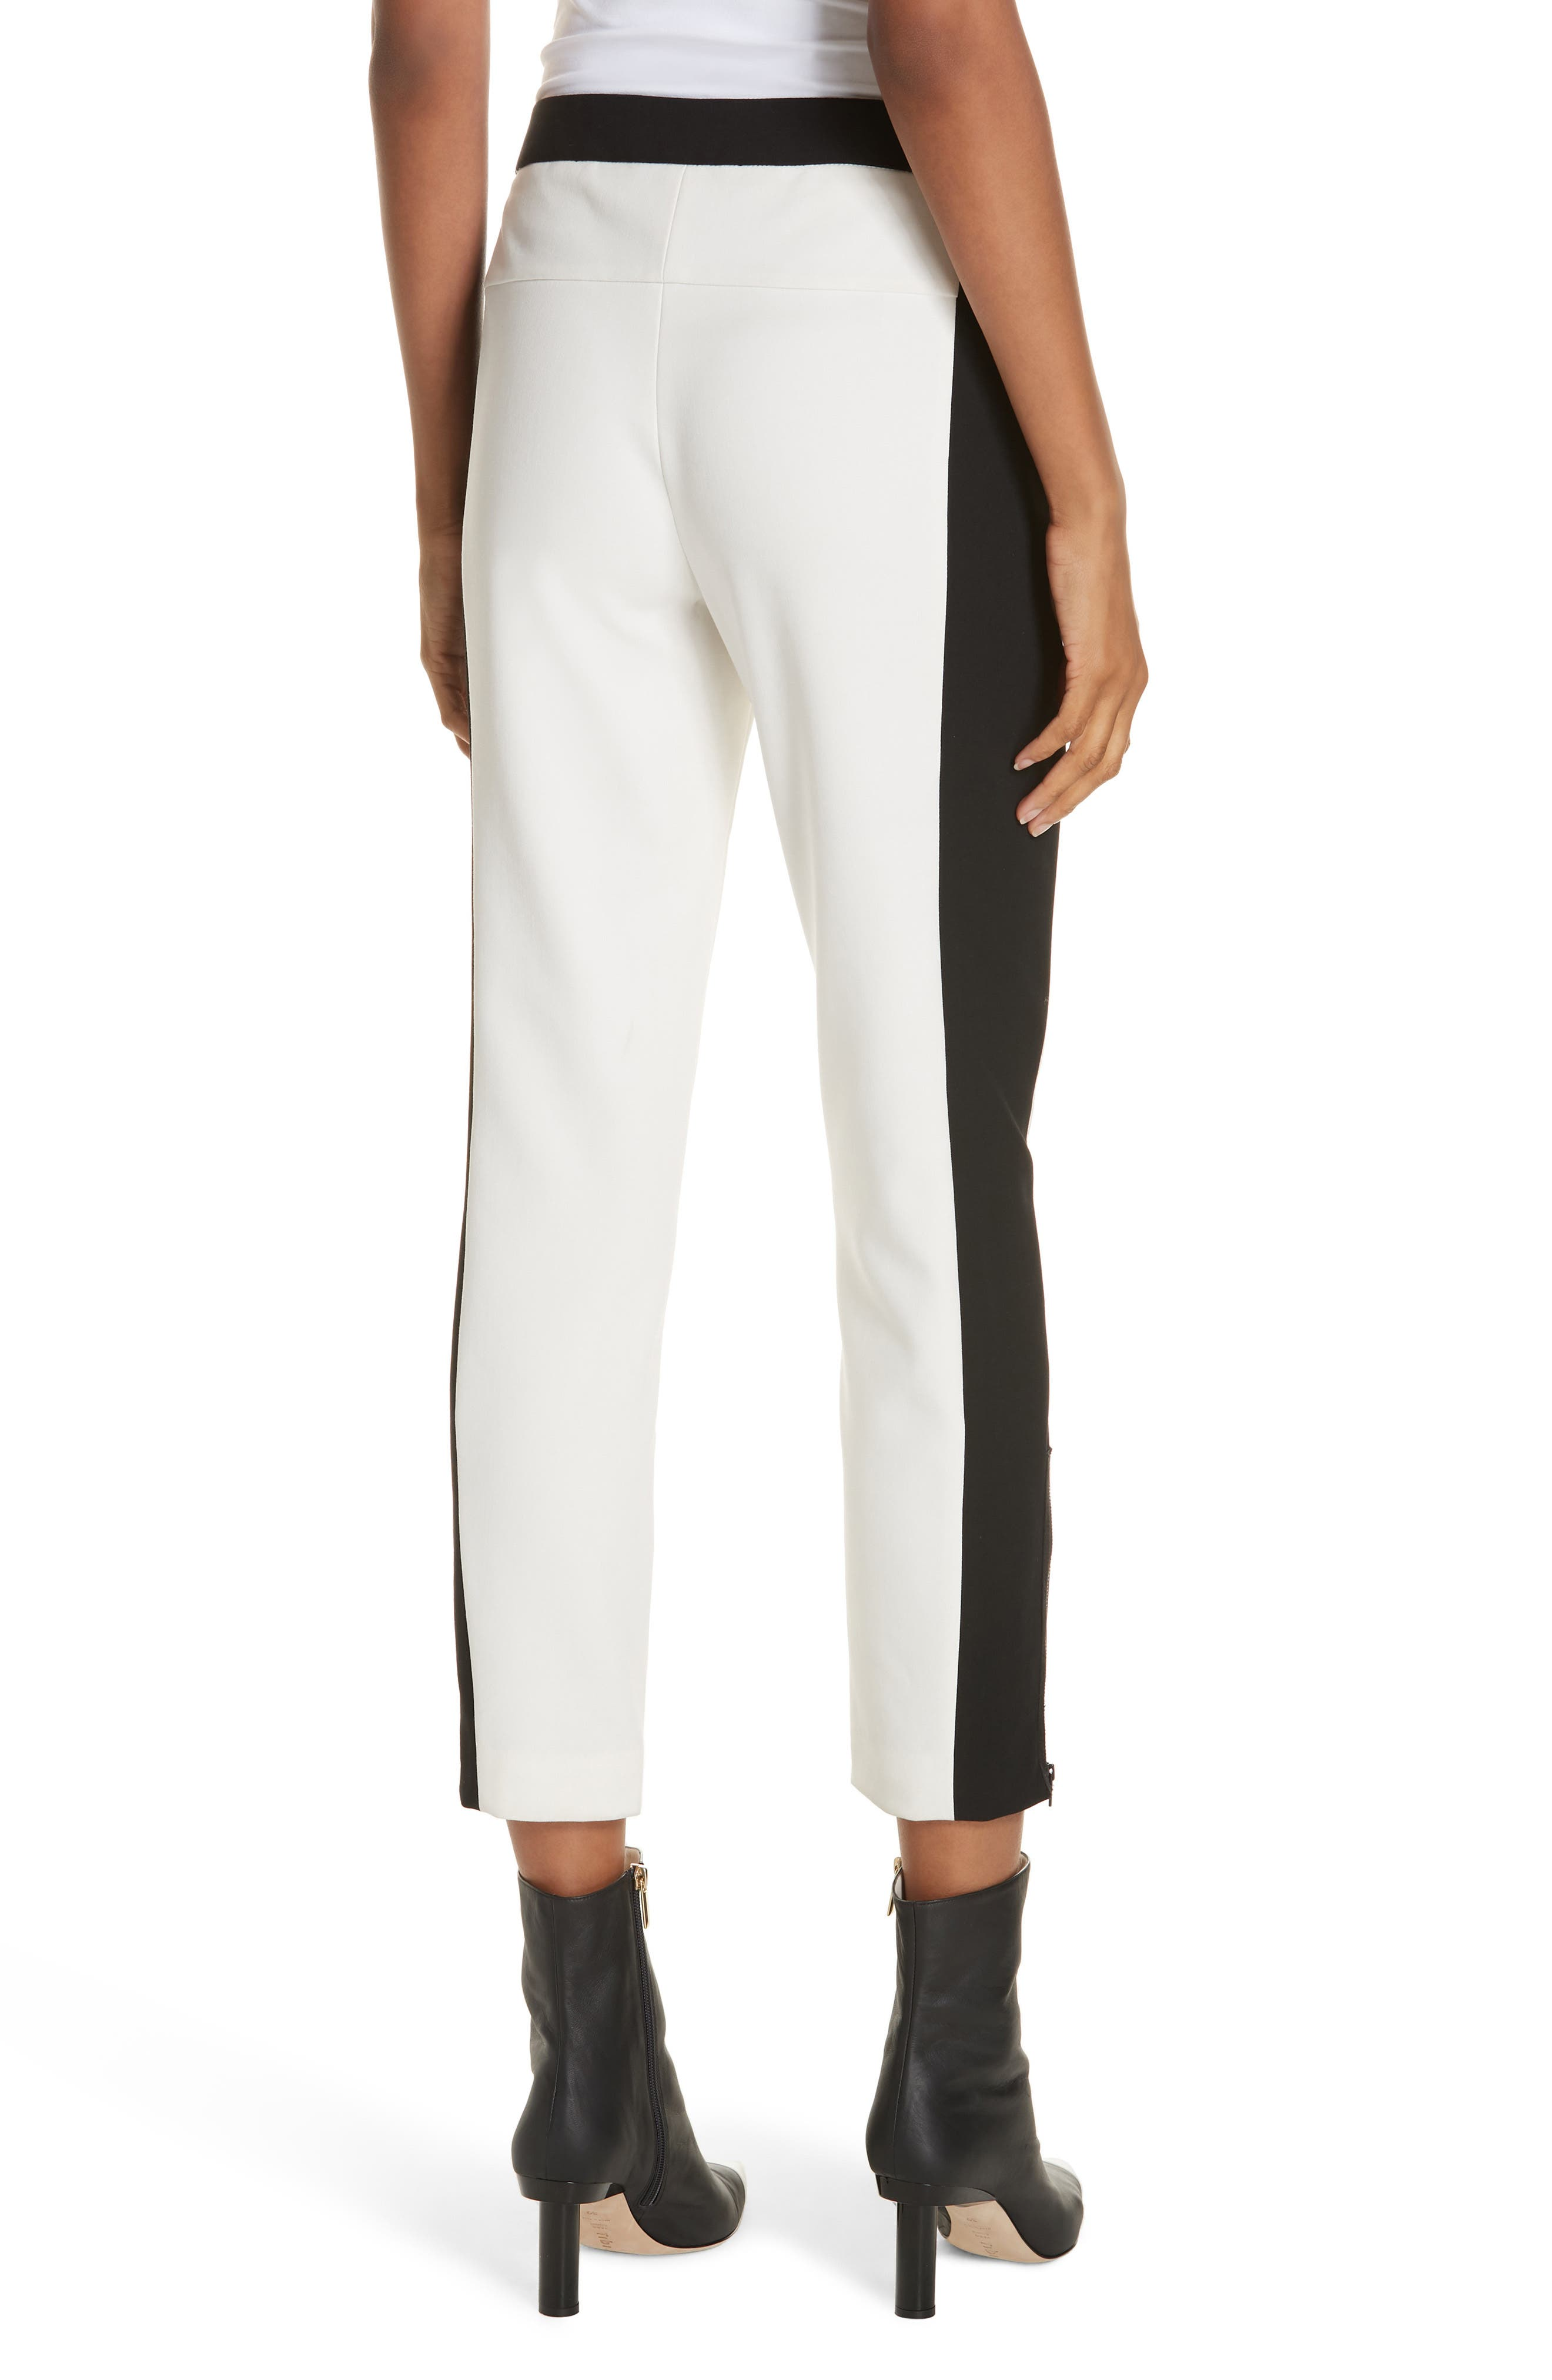 Anson Tuxedo Skinny Pants,                             Alternate thumbnail 2, color,                             IVORY MULTI